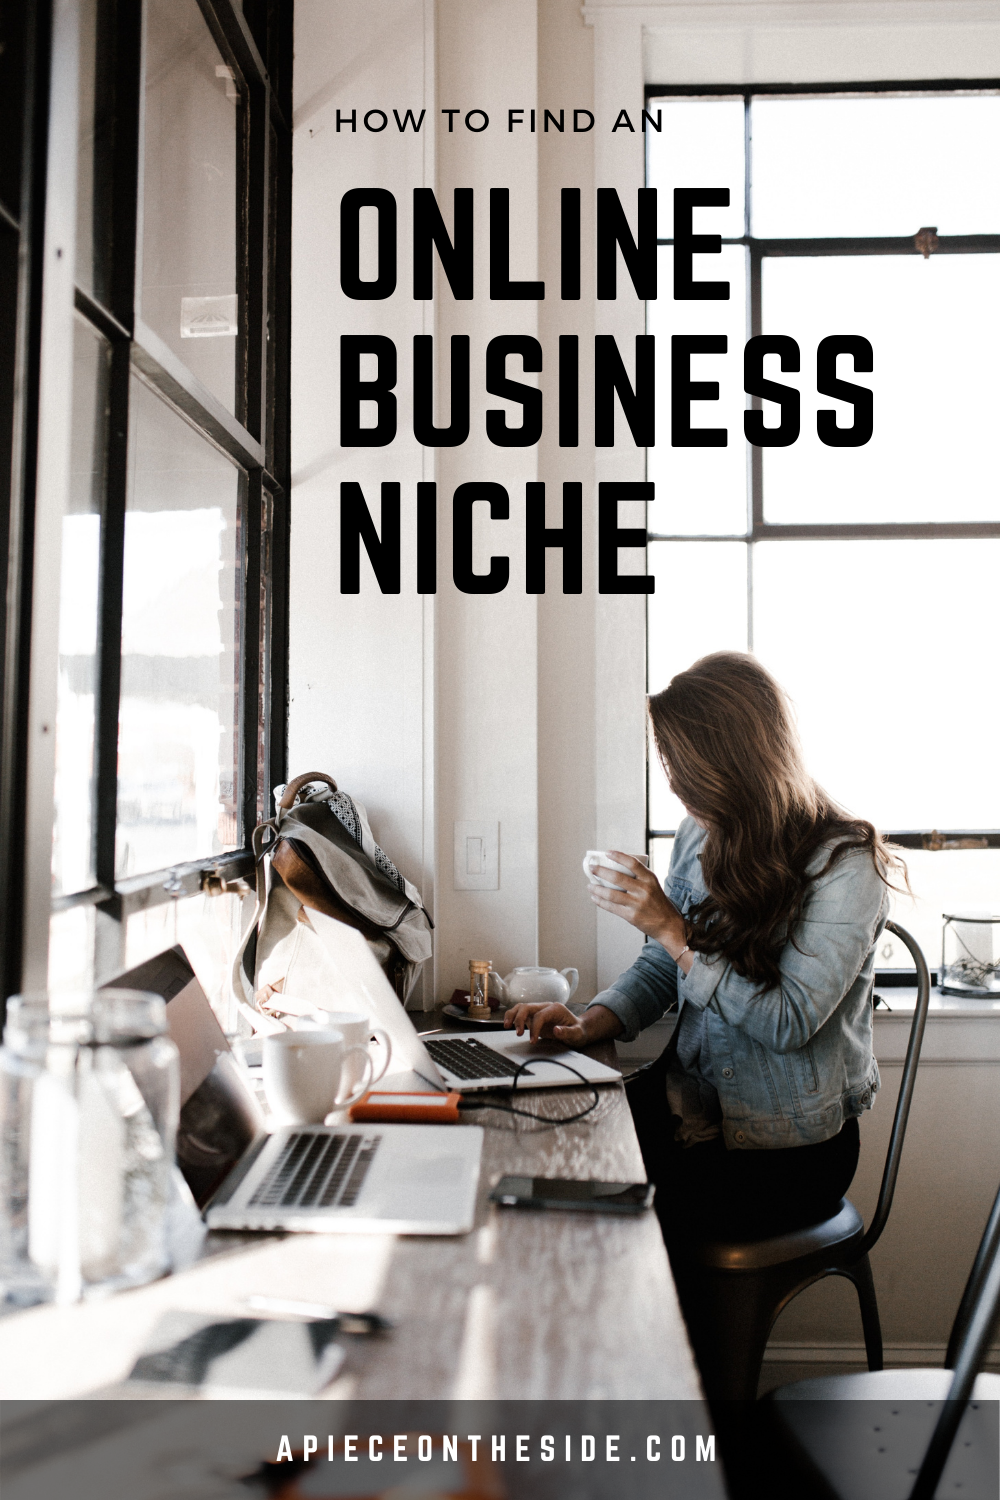 How to Find an Online Business Niche